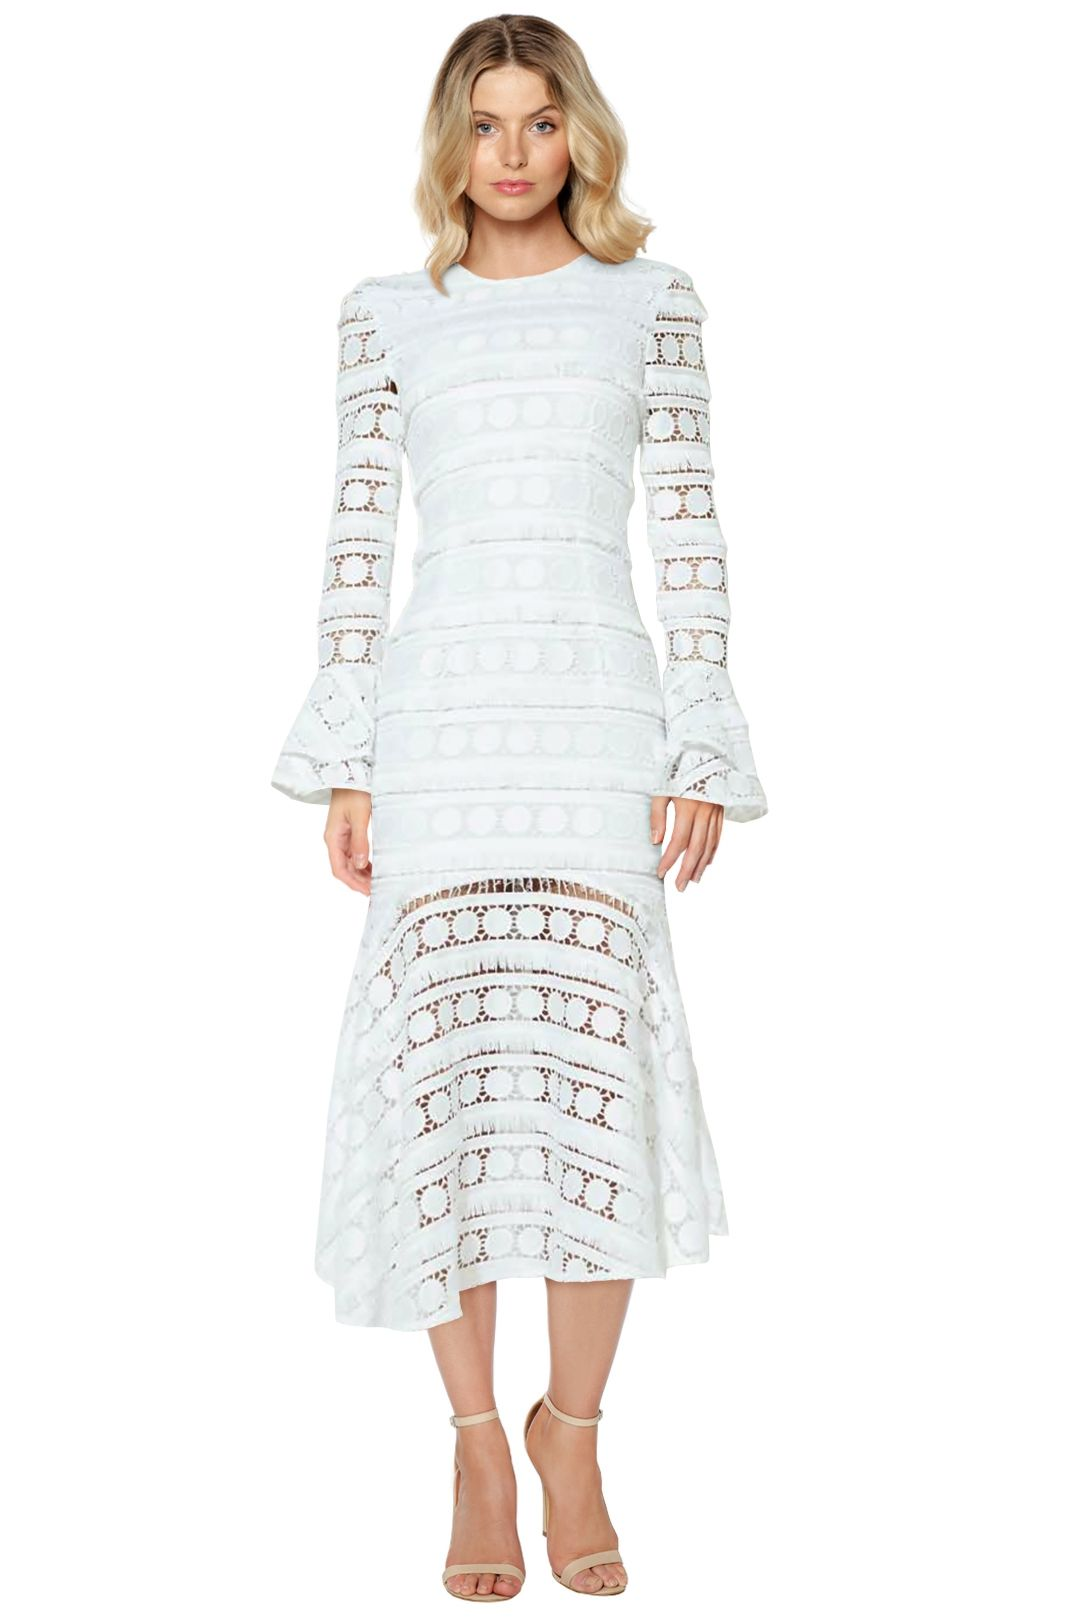 Mossman - Miss Moonlight Long Dress - White - Front